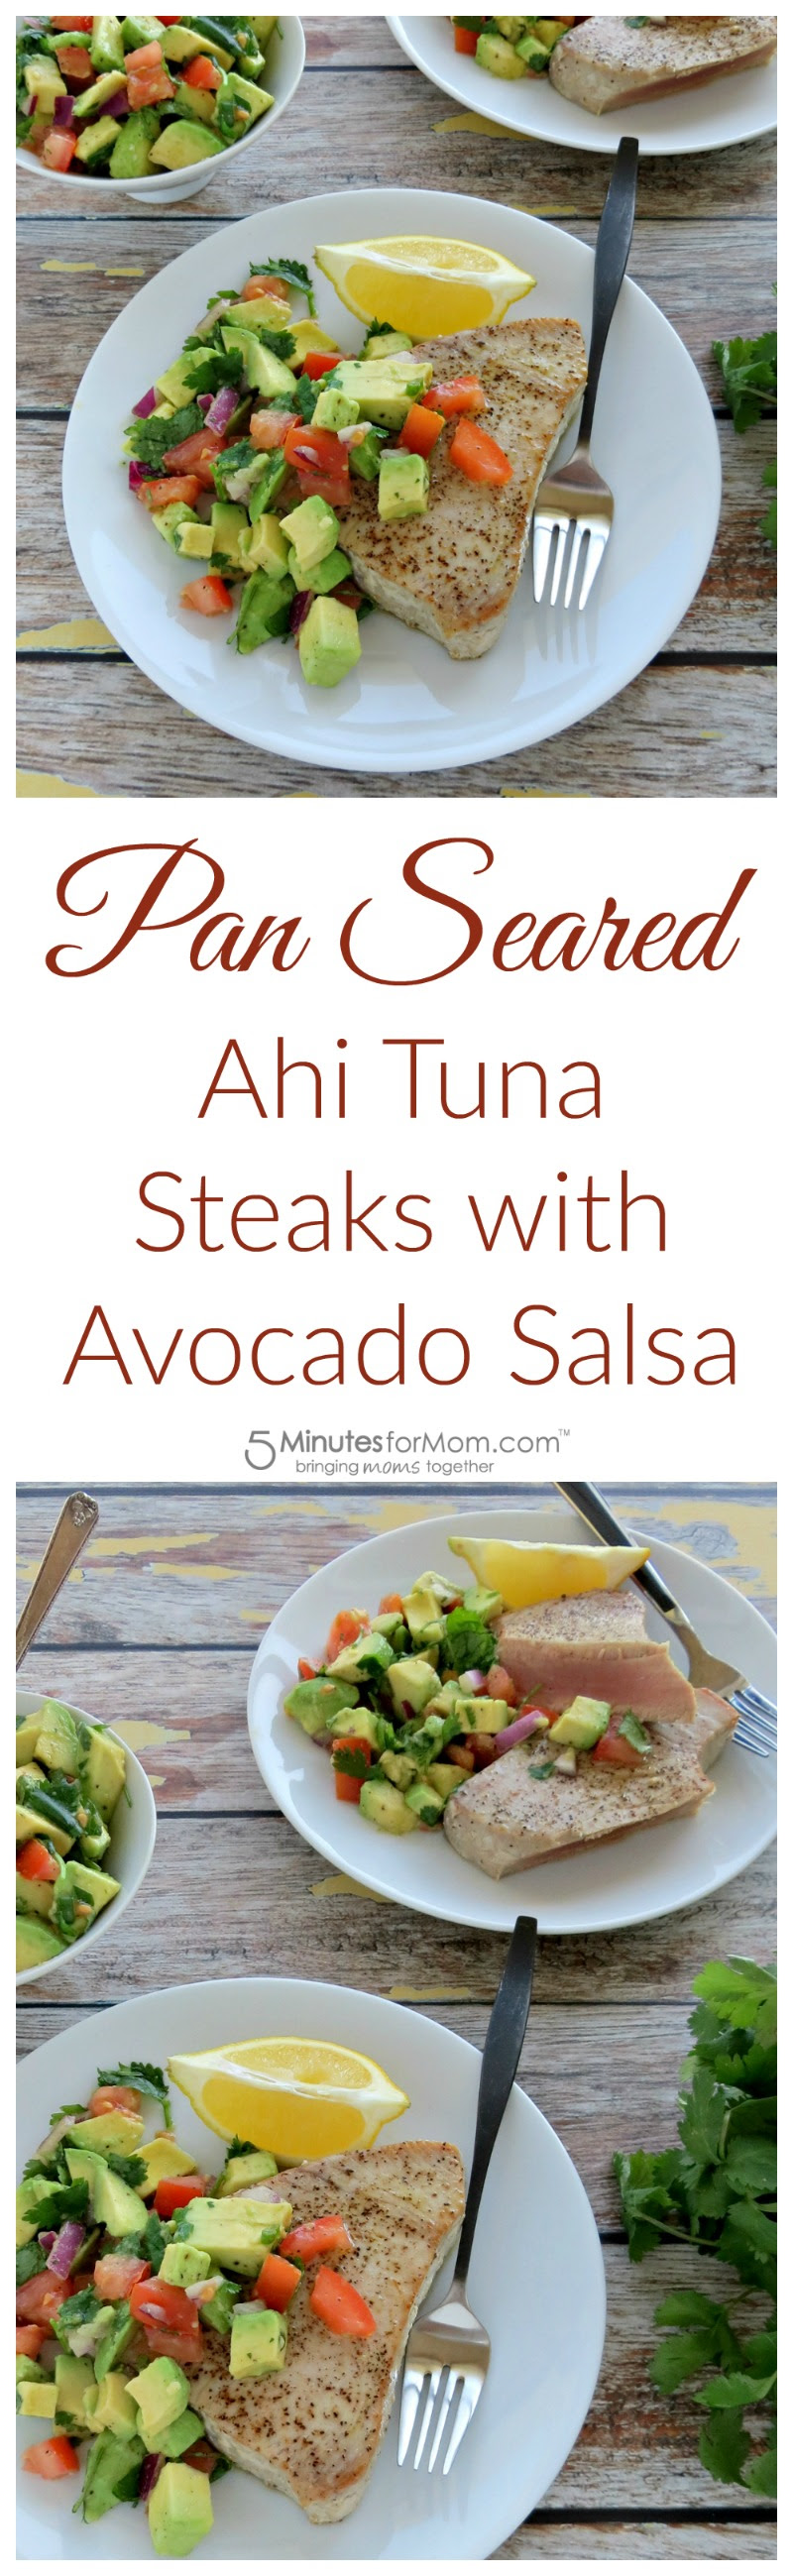 Pan Seared Ahi Tuna w/ Avocado Salsa | 5 Minutes For Mom